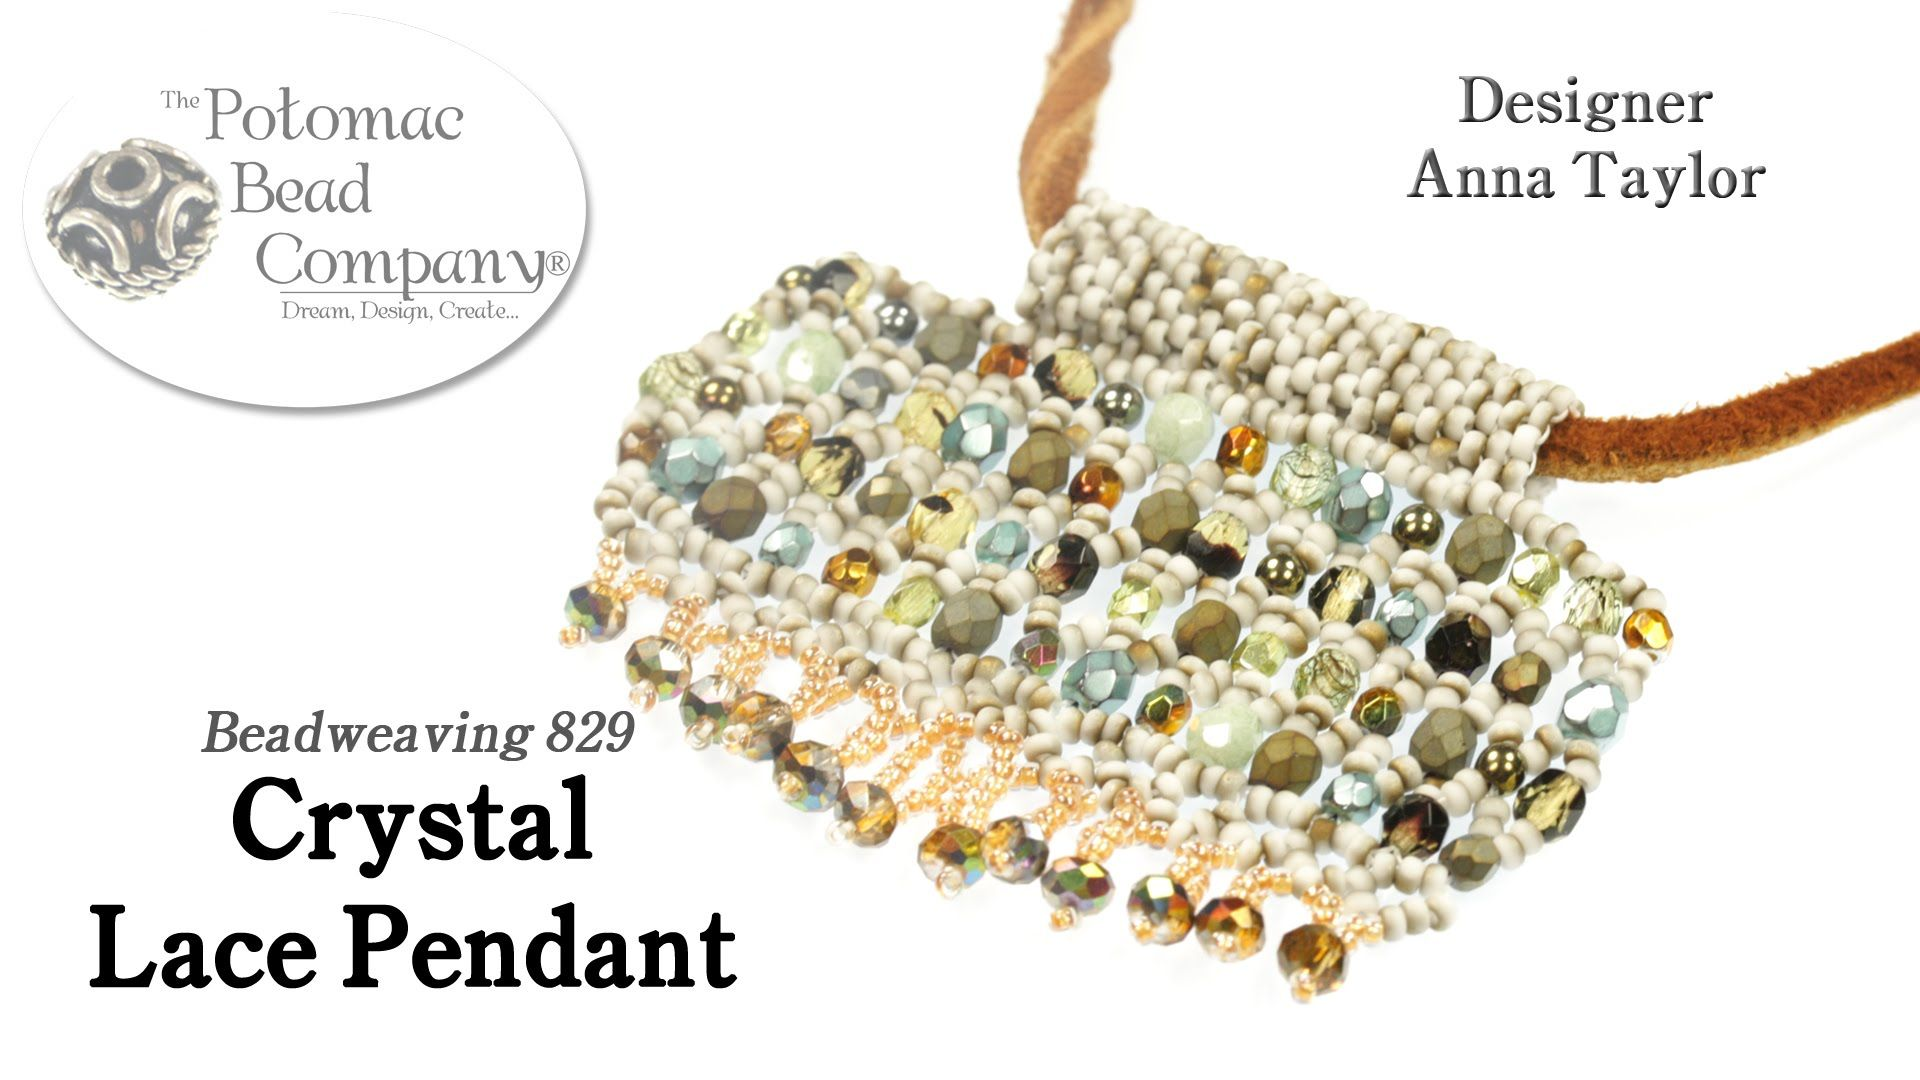 Anna taylor shows how to take a netted crystal lace bracelet design